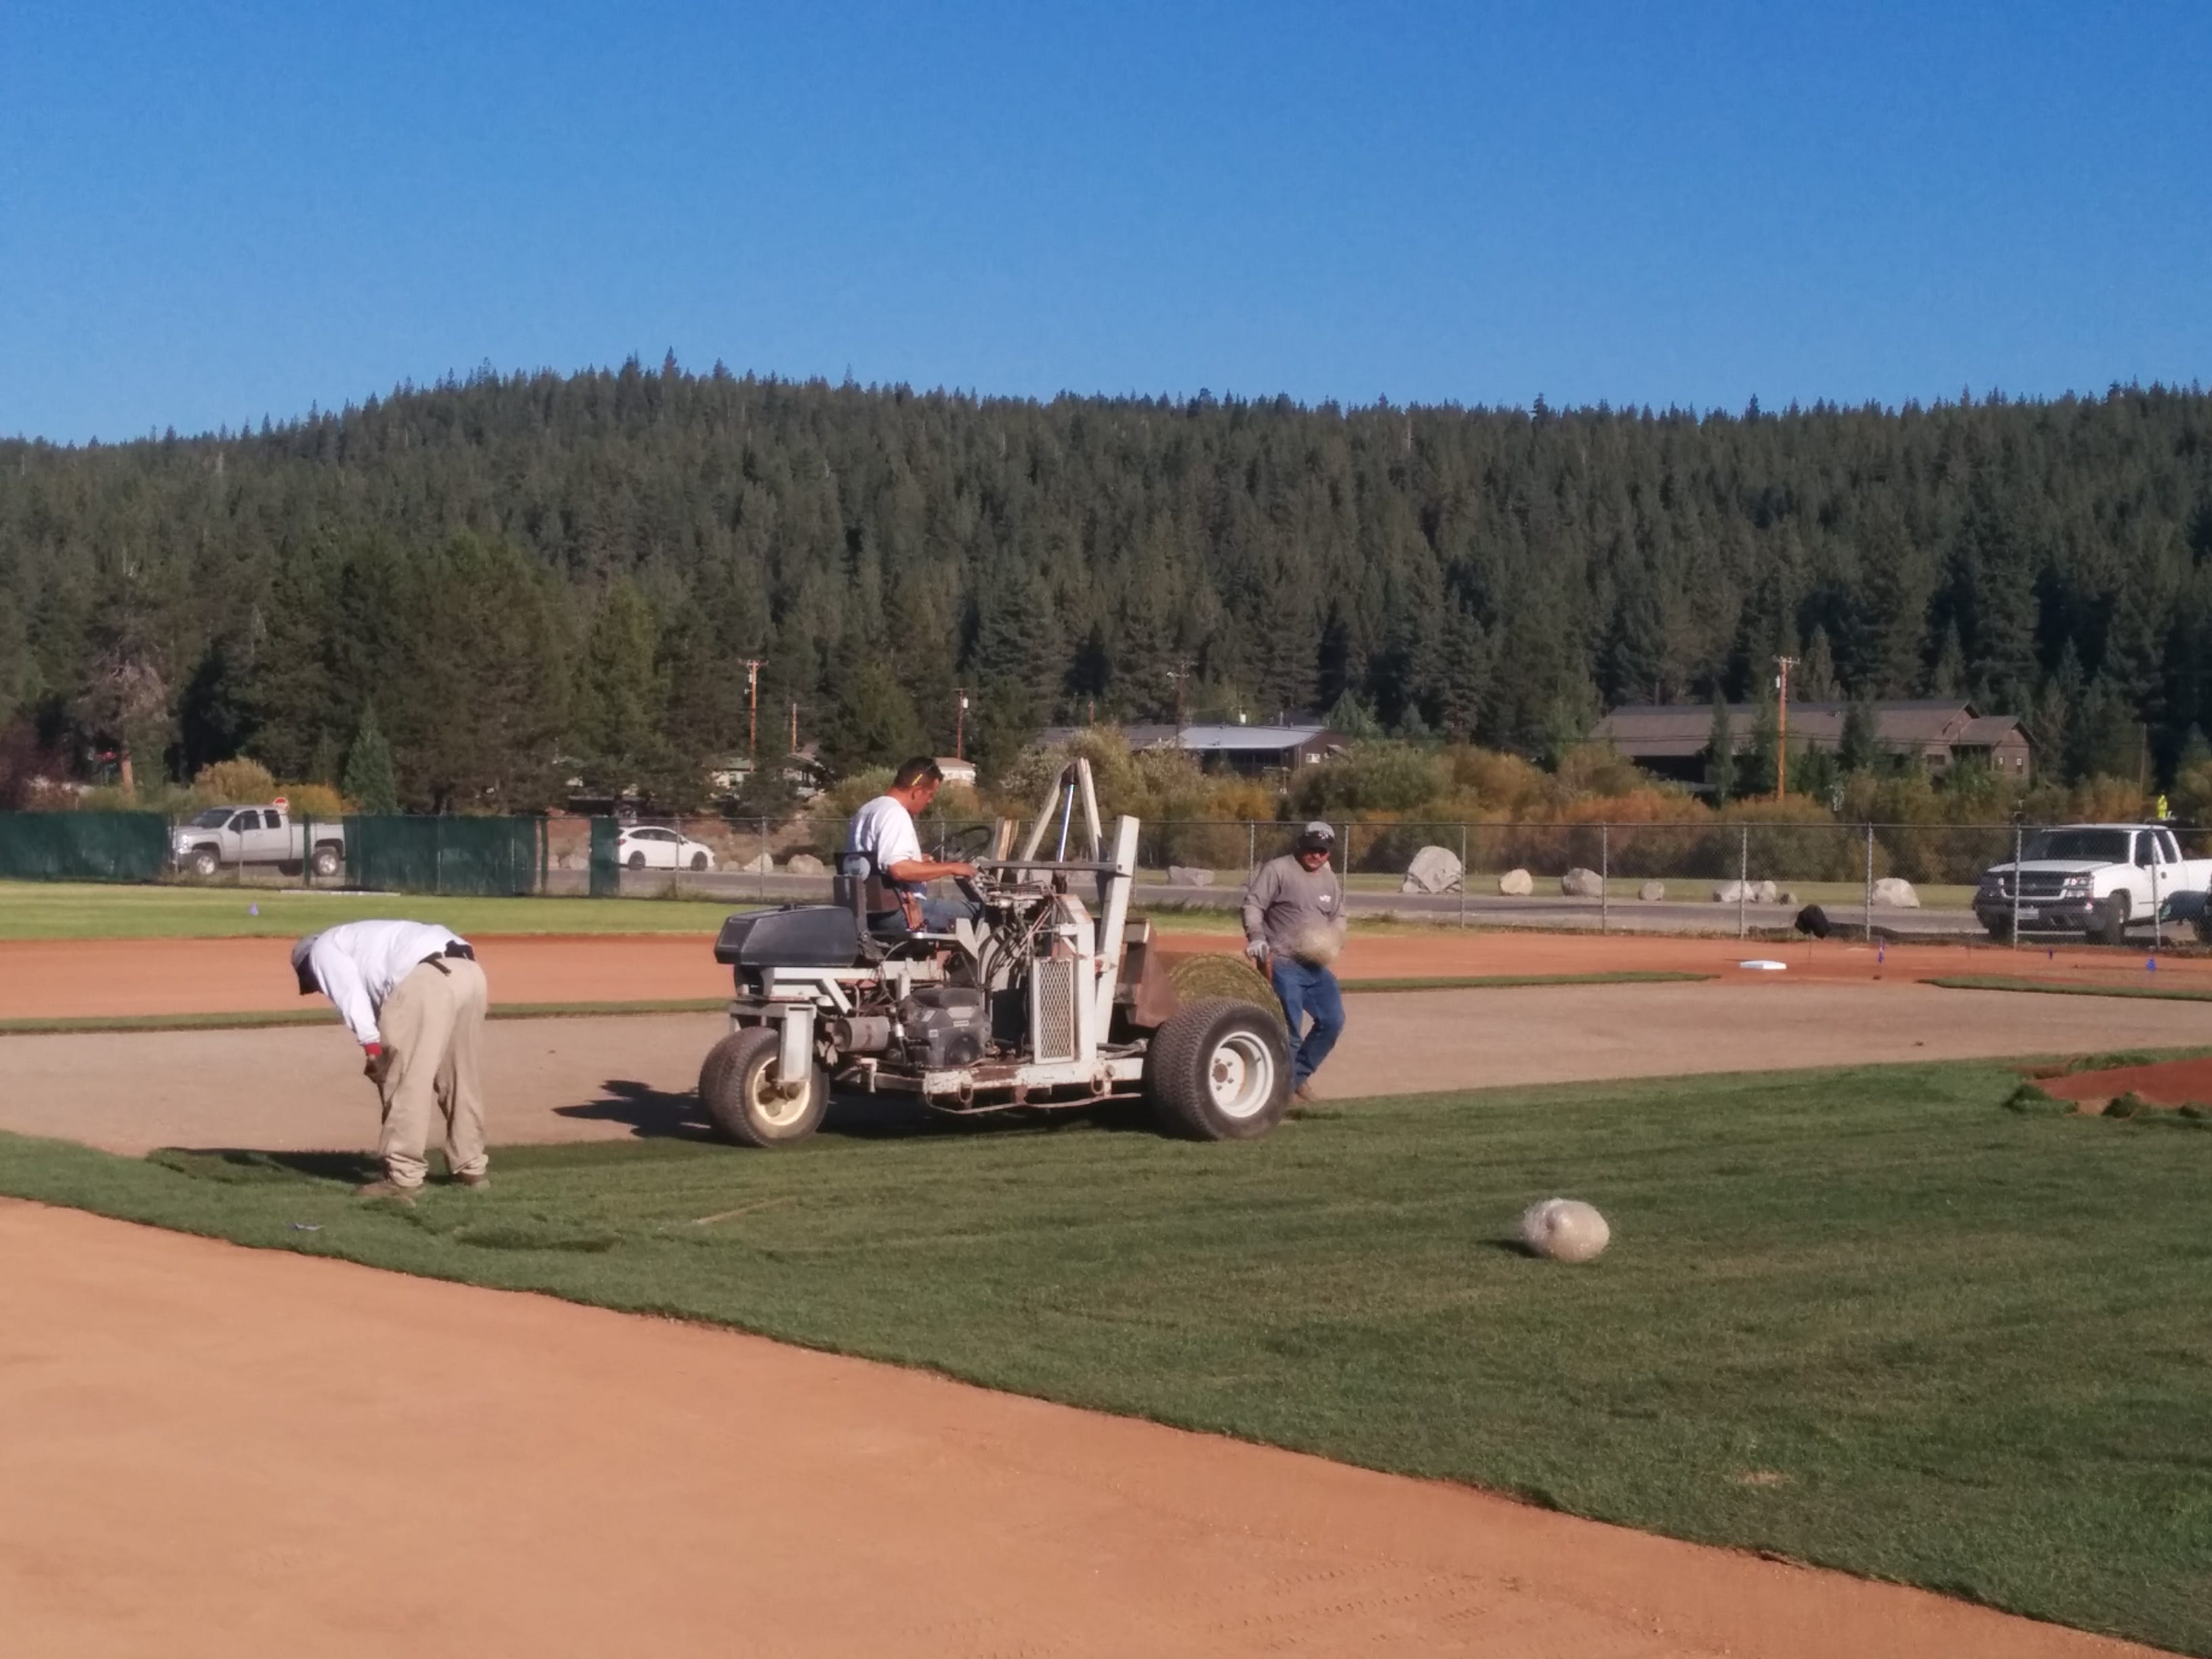 Work being done on the Truckee baseball field.